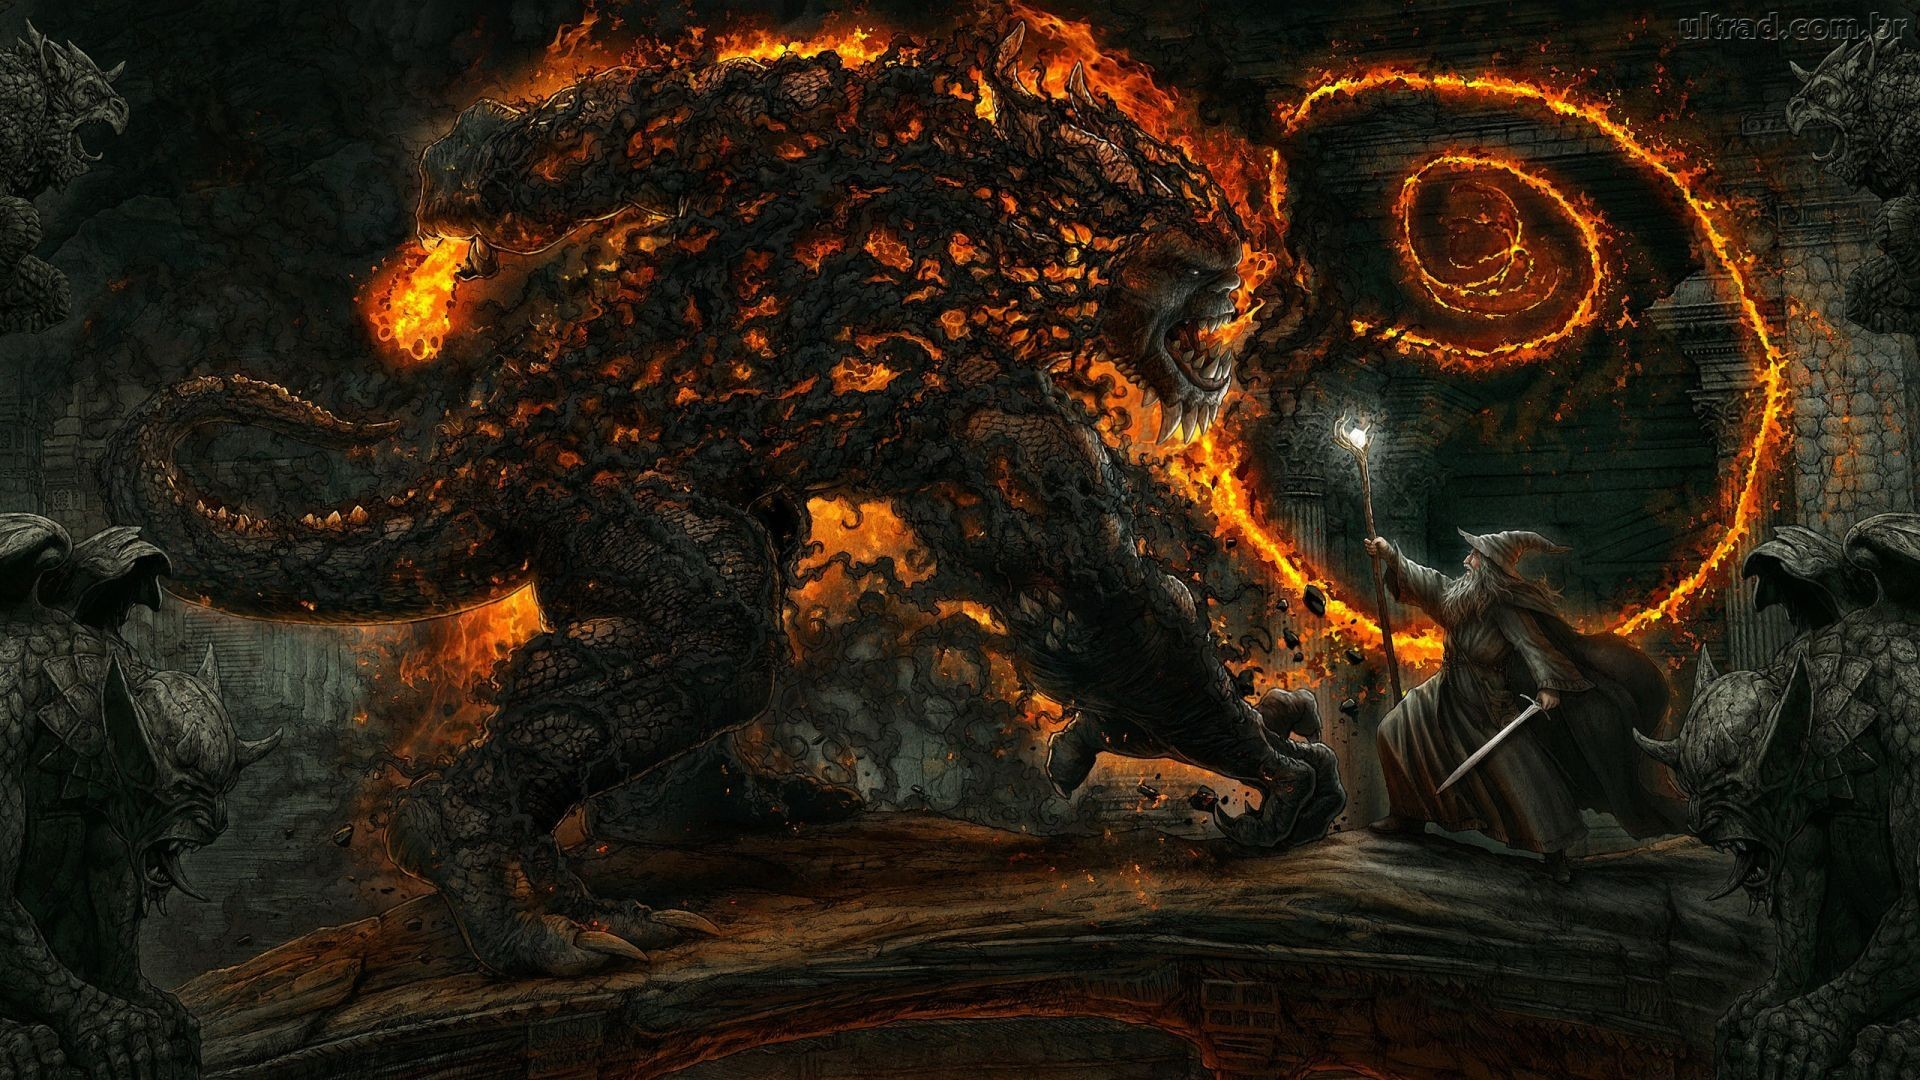 Res: 1920x1080, Ancient Demon | The Balrogs of Morgoth | Pinterest | Ancient demons and  Morgoth